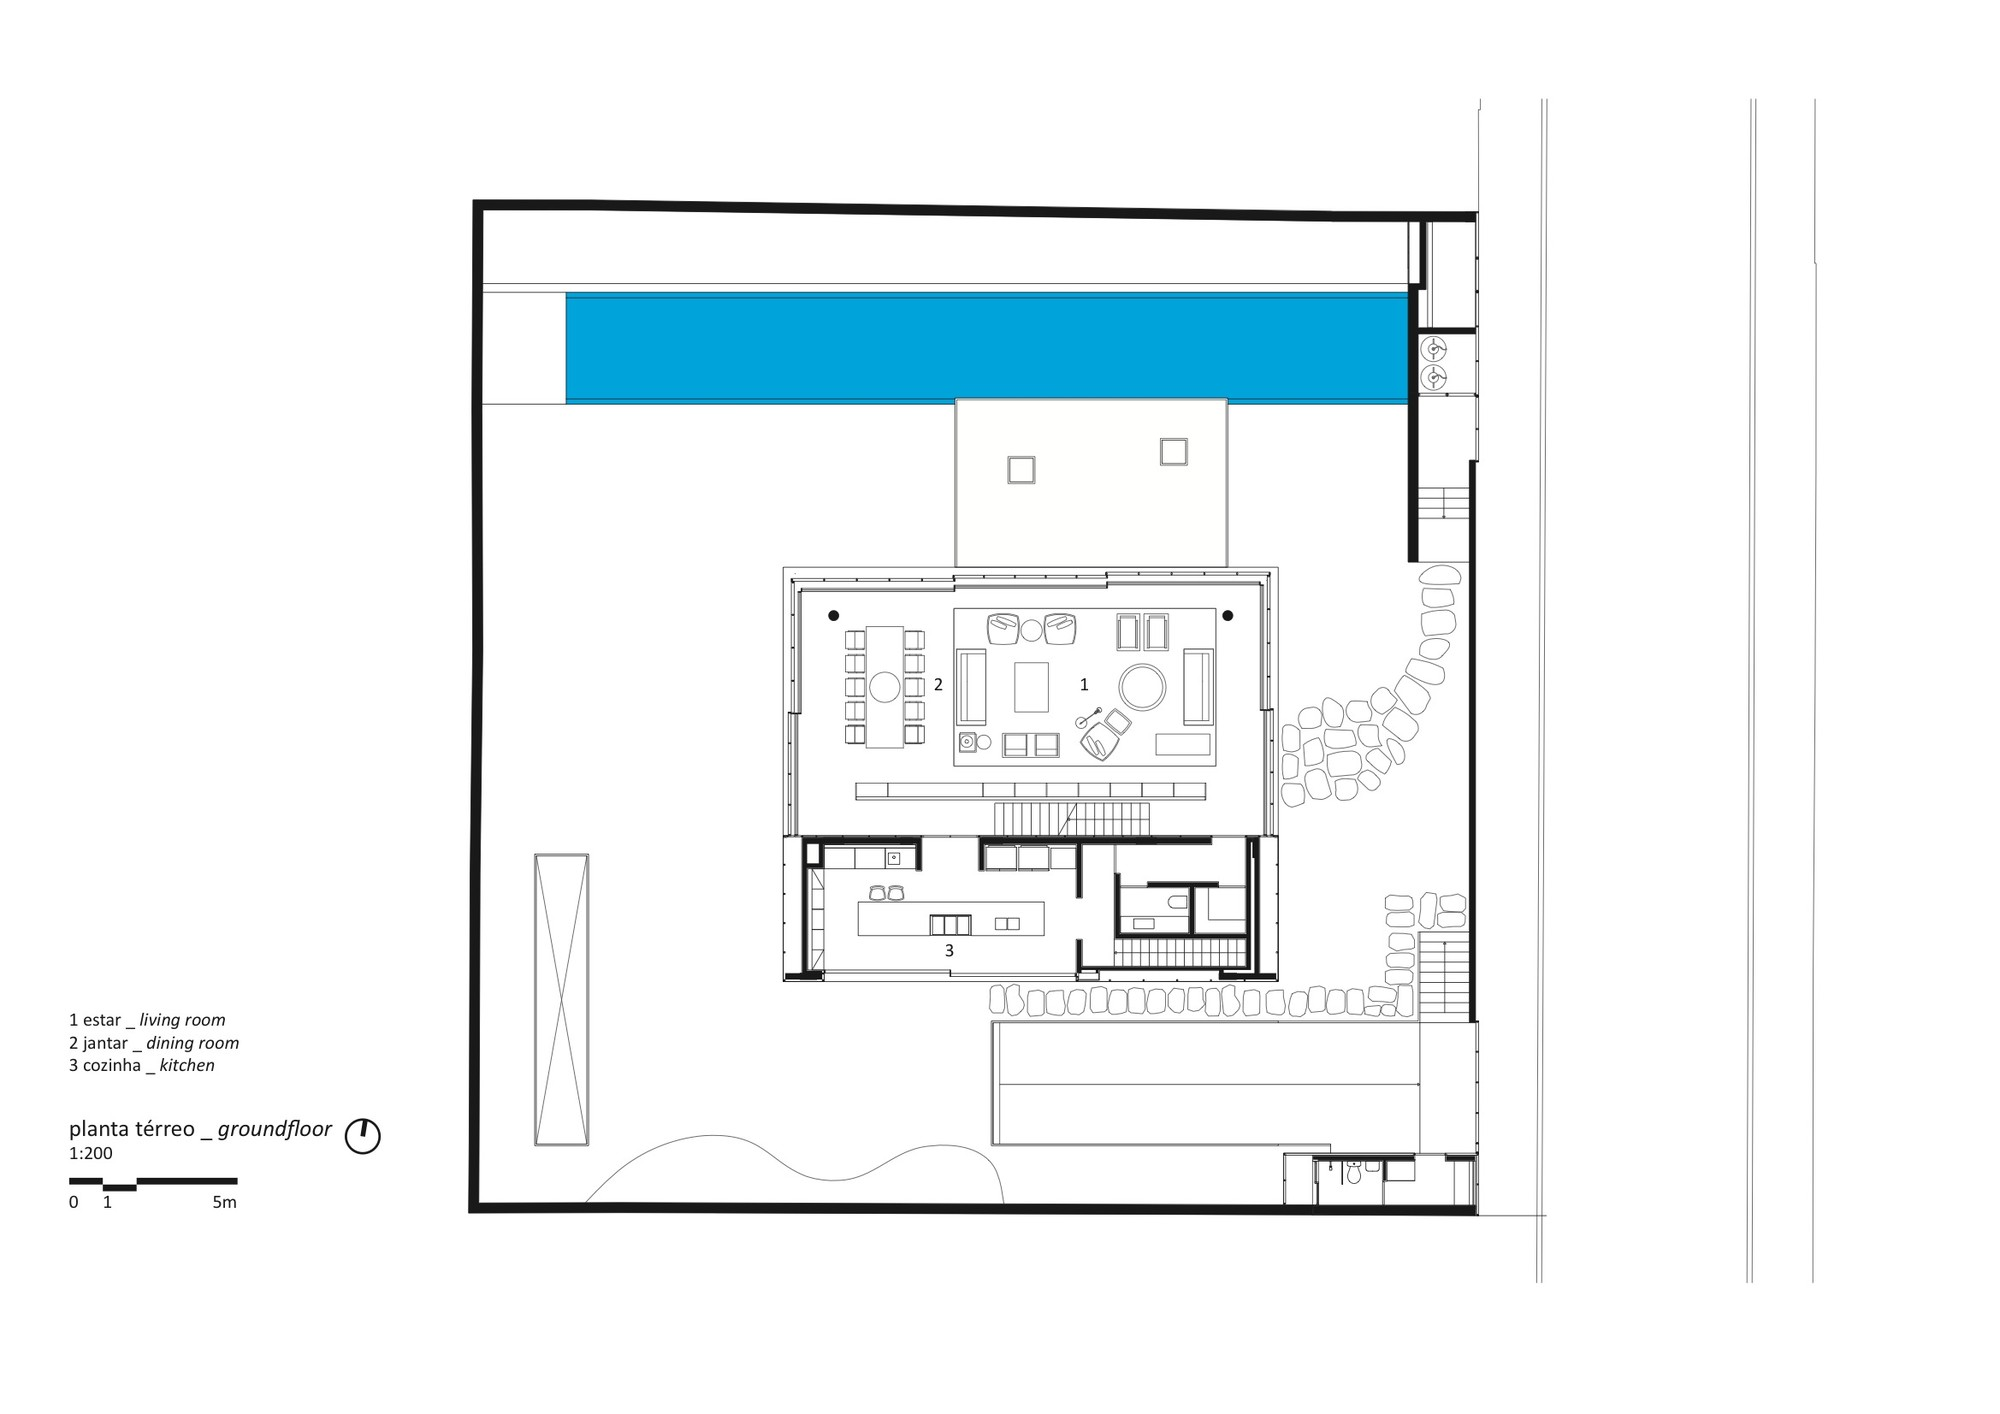 Cube house studio mk27 marcio kogan suzana glogowski for Cube house design layout plan